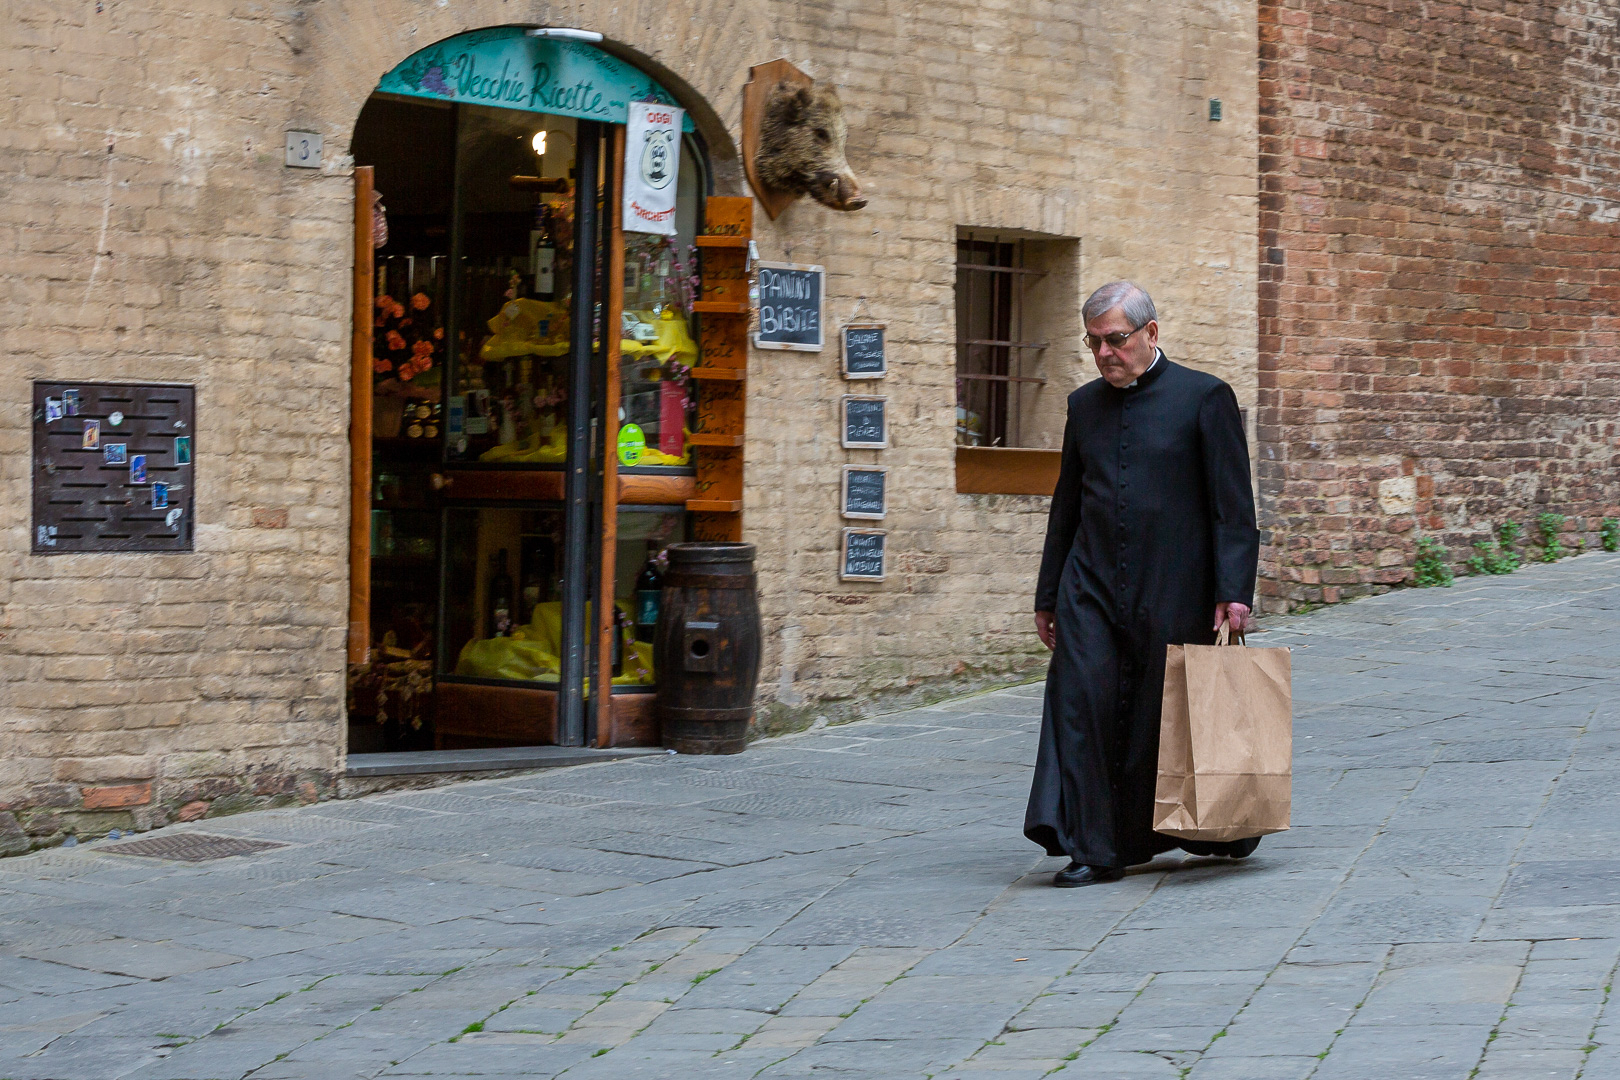 4247373525237499457-PD4-Esbjerg-Fotoklub-Ib-Corneliussen-Priest-with-Shopping-Bag